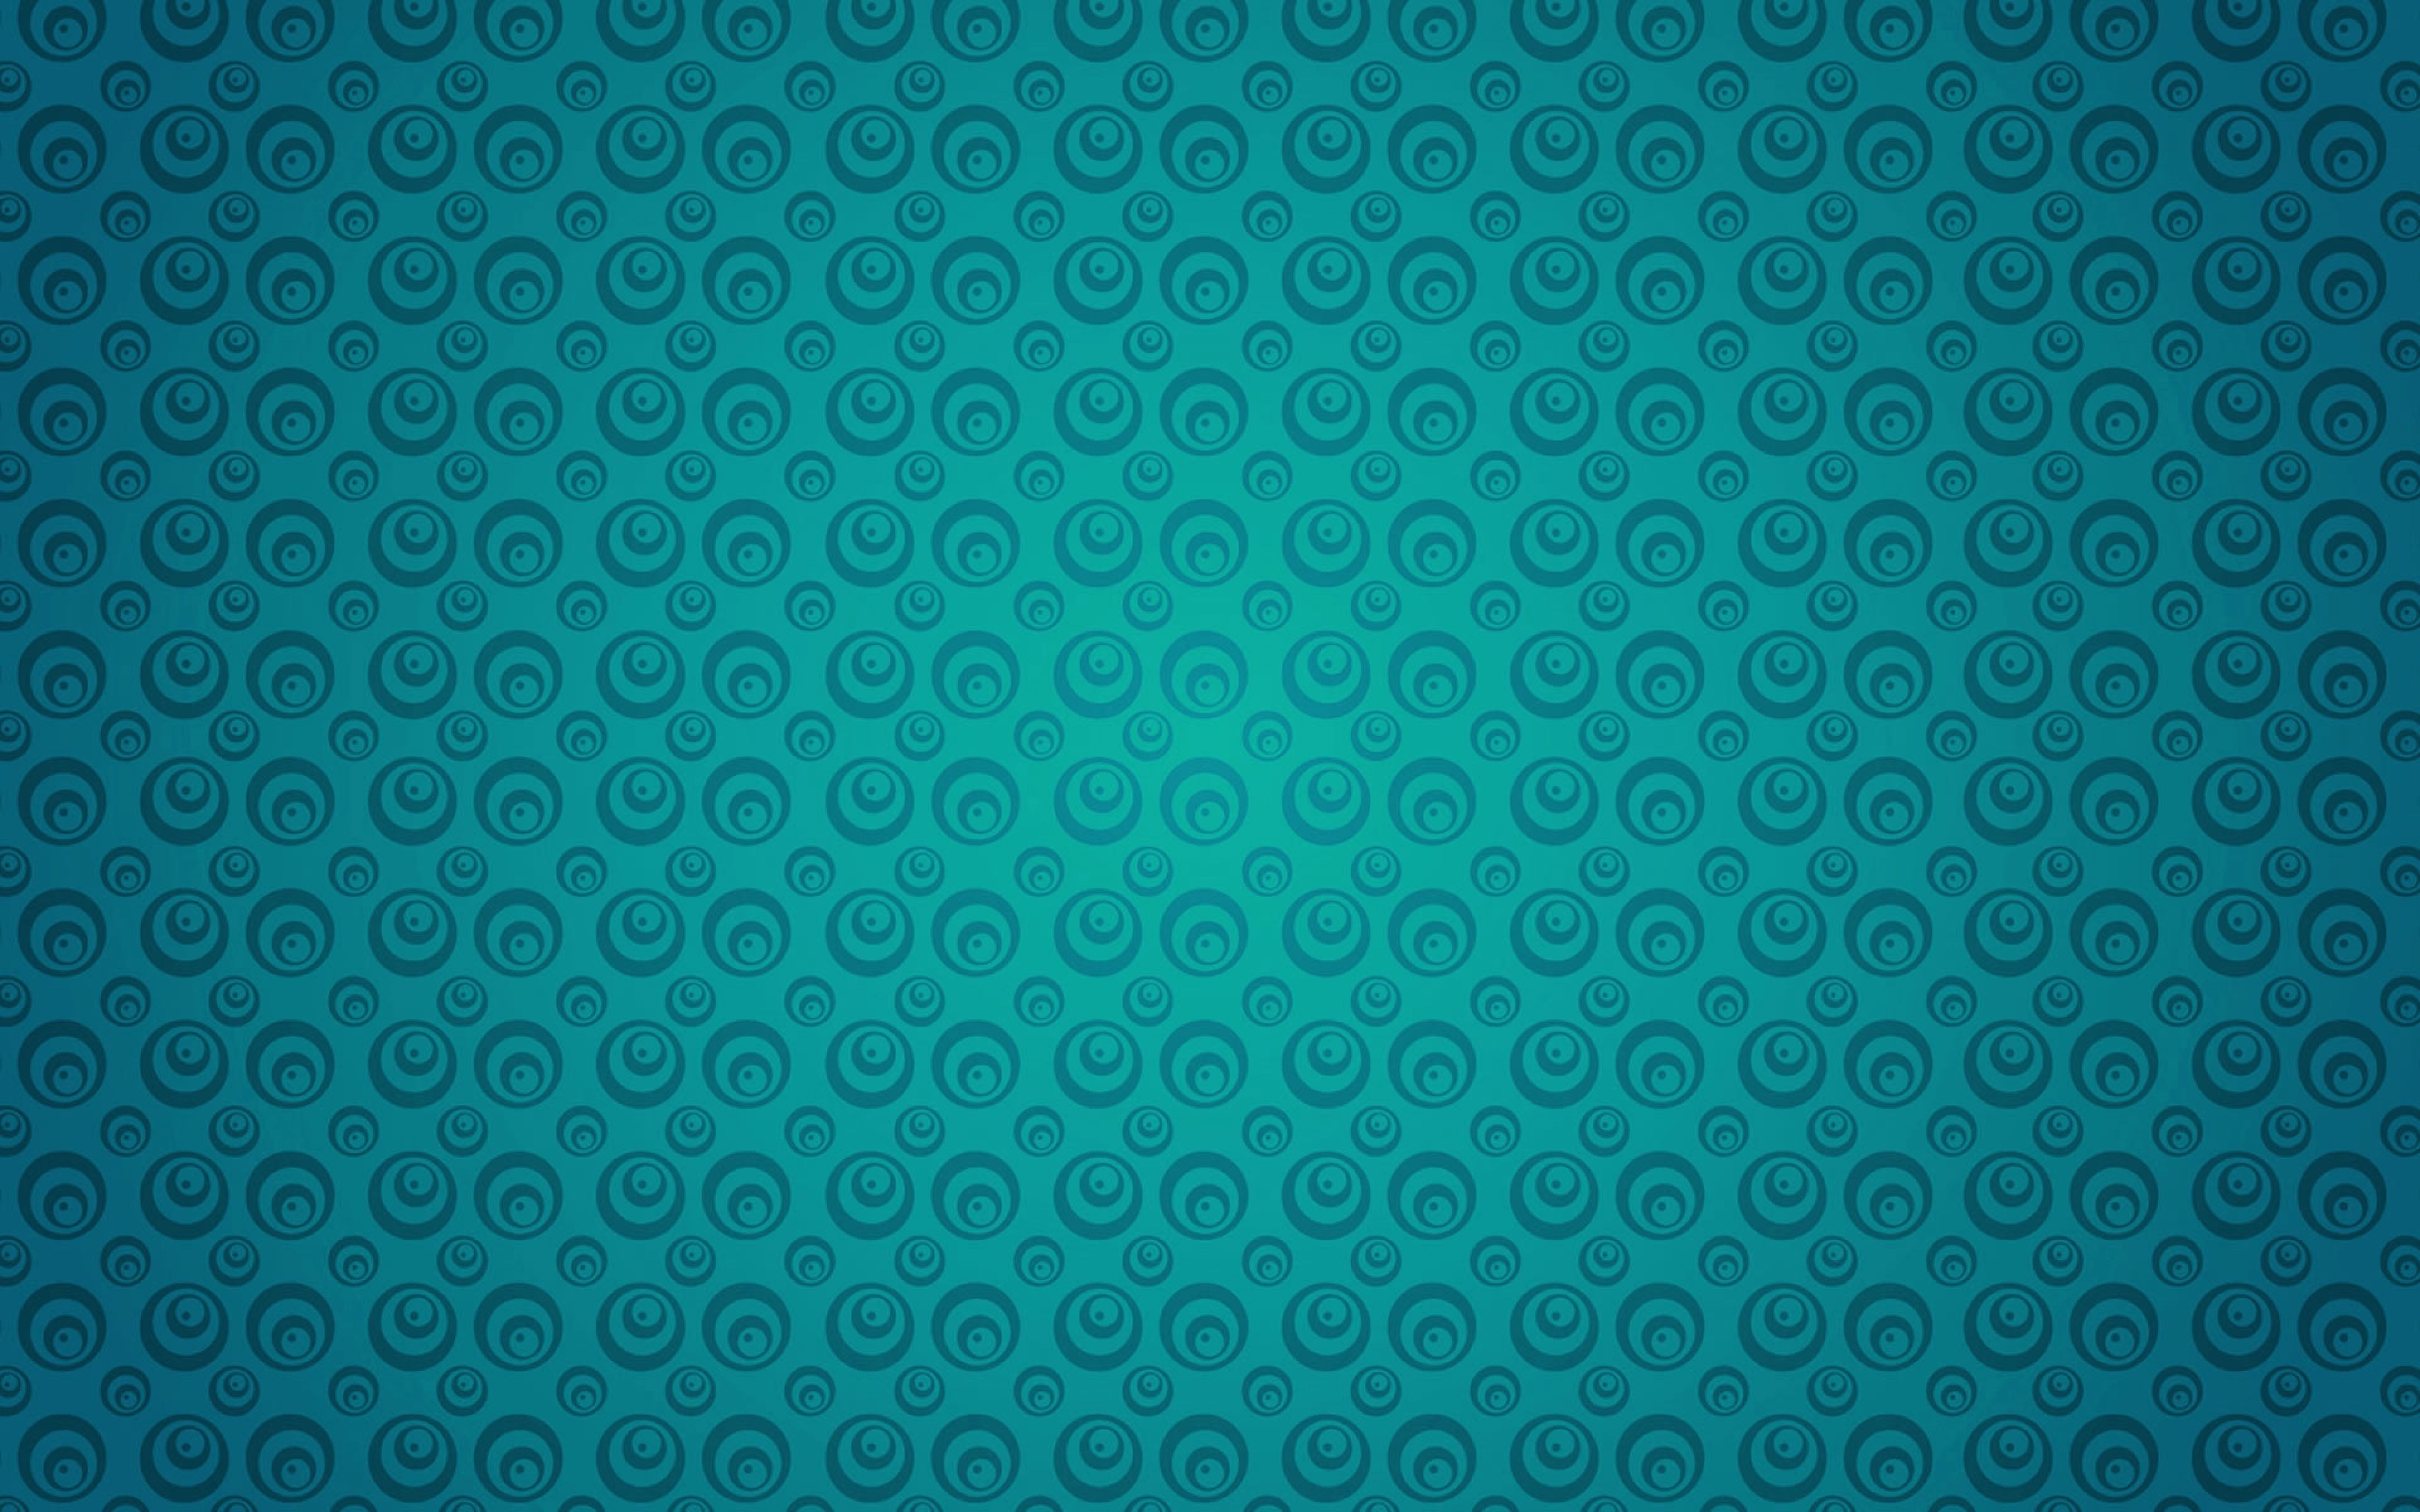 Best ideas about turquoise wallpaper on pinterest aqua hd best ideas about turquoise wallpaper on pinterest aqua voltagebd Image collections